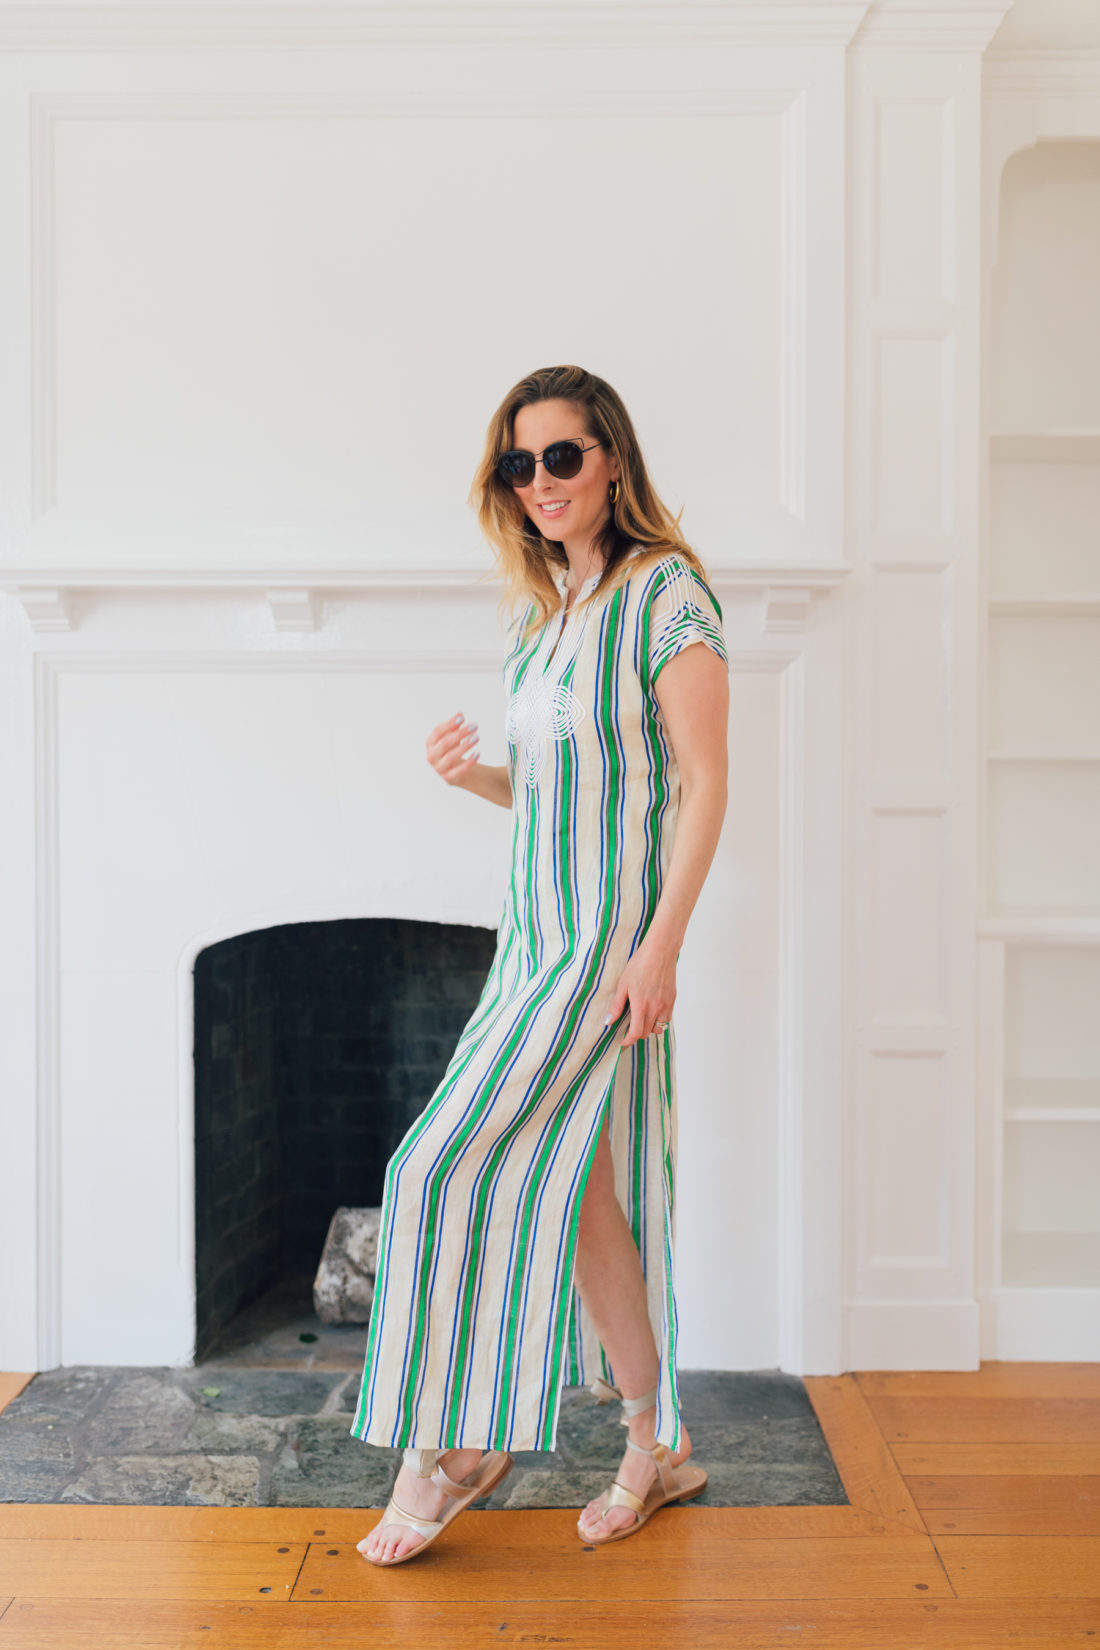 Eva Amurri Martino of Happily Eva After wears a green and white striped dress and shares her Jamaica packing list